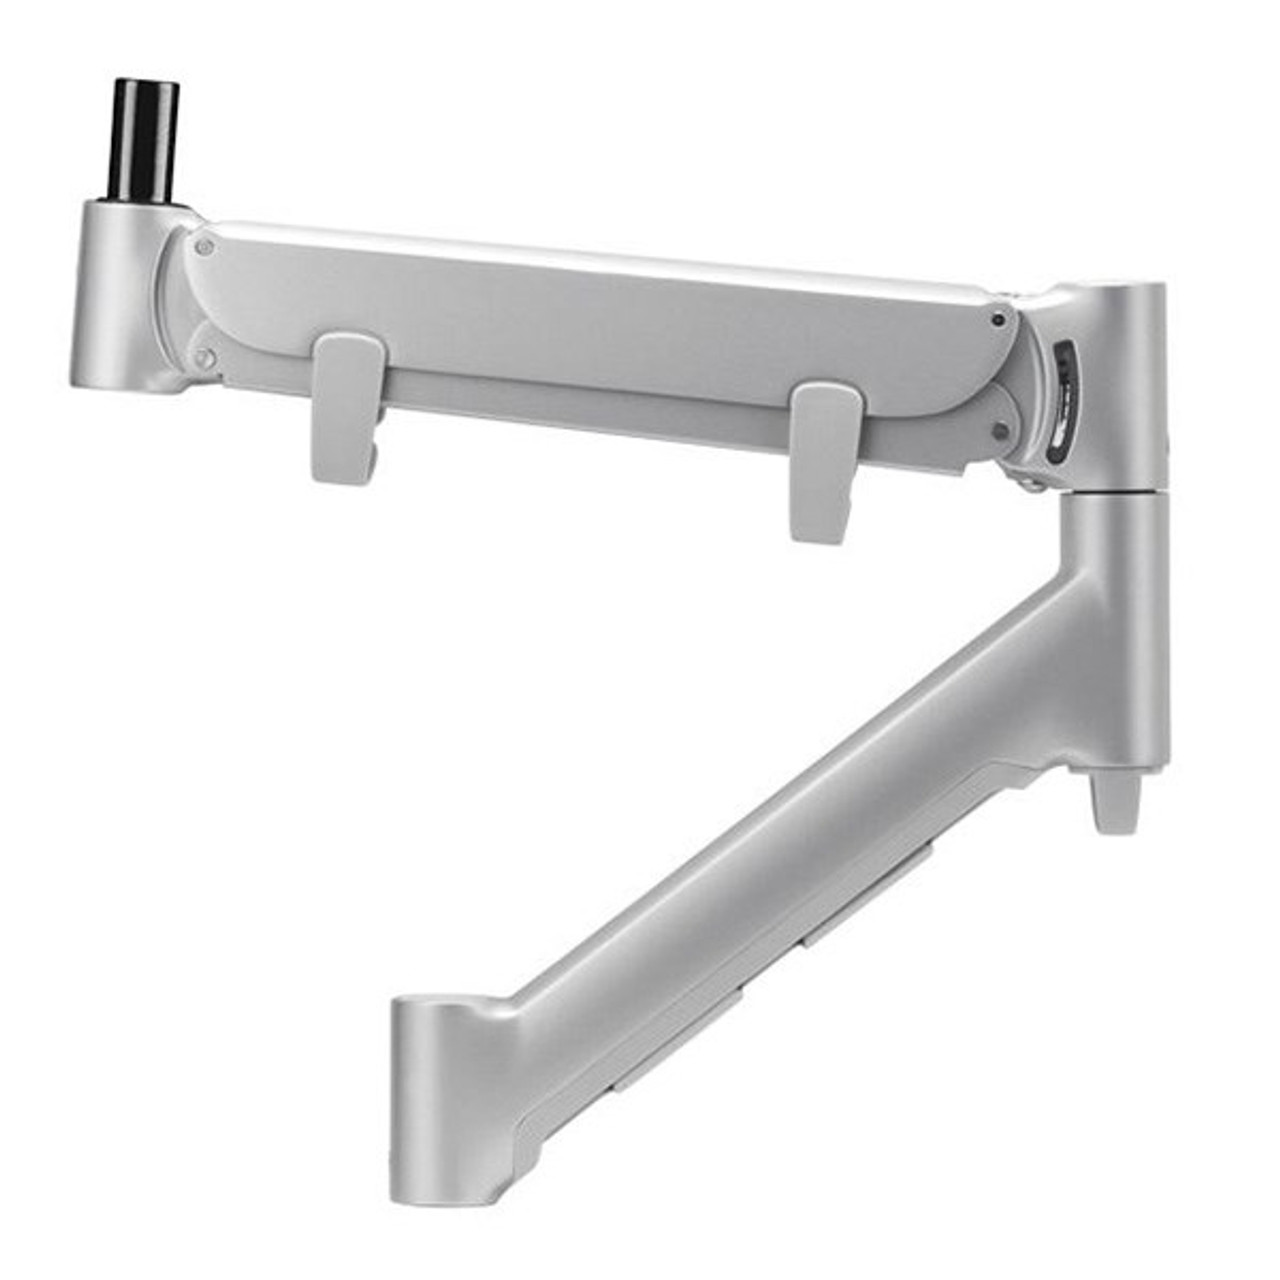 Image for Atdec AWM-AHX-S Heavy Duty Dynamic Monitor Arm up to 43in - Silver CX Computer Superstore